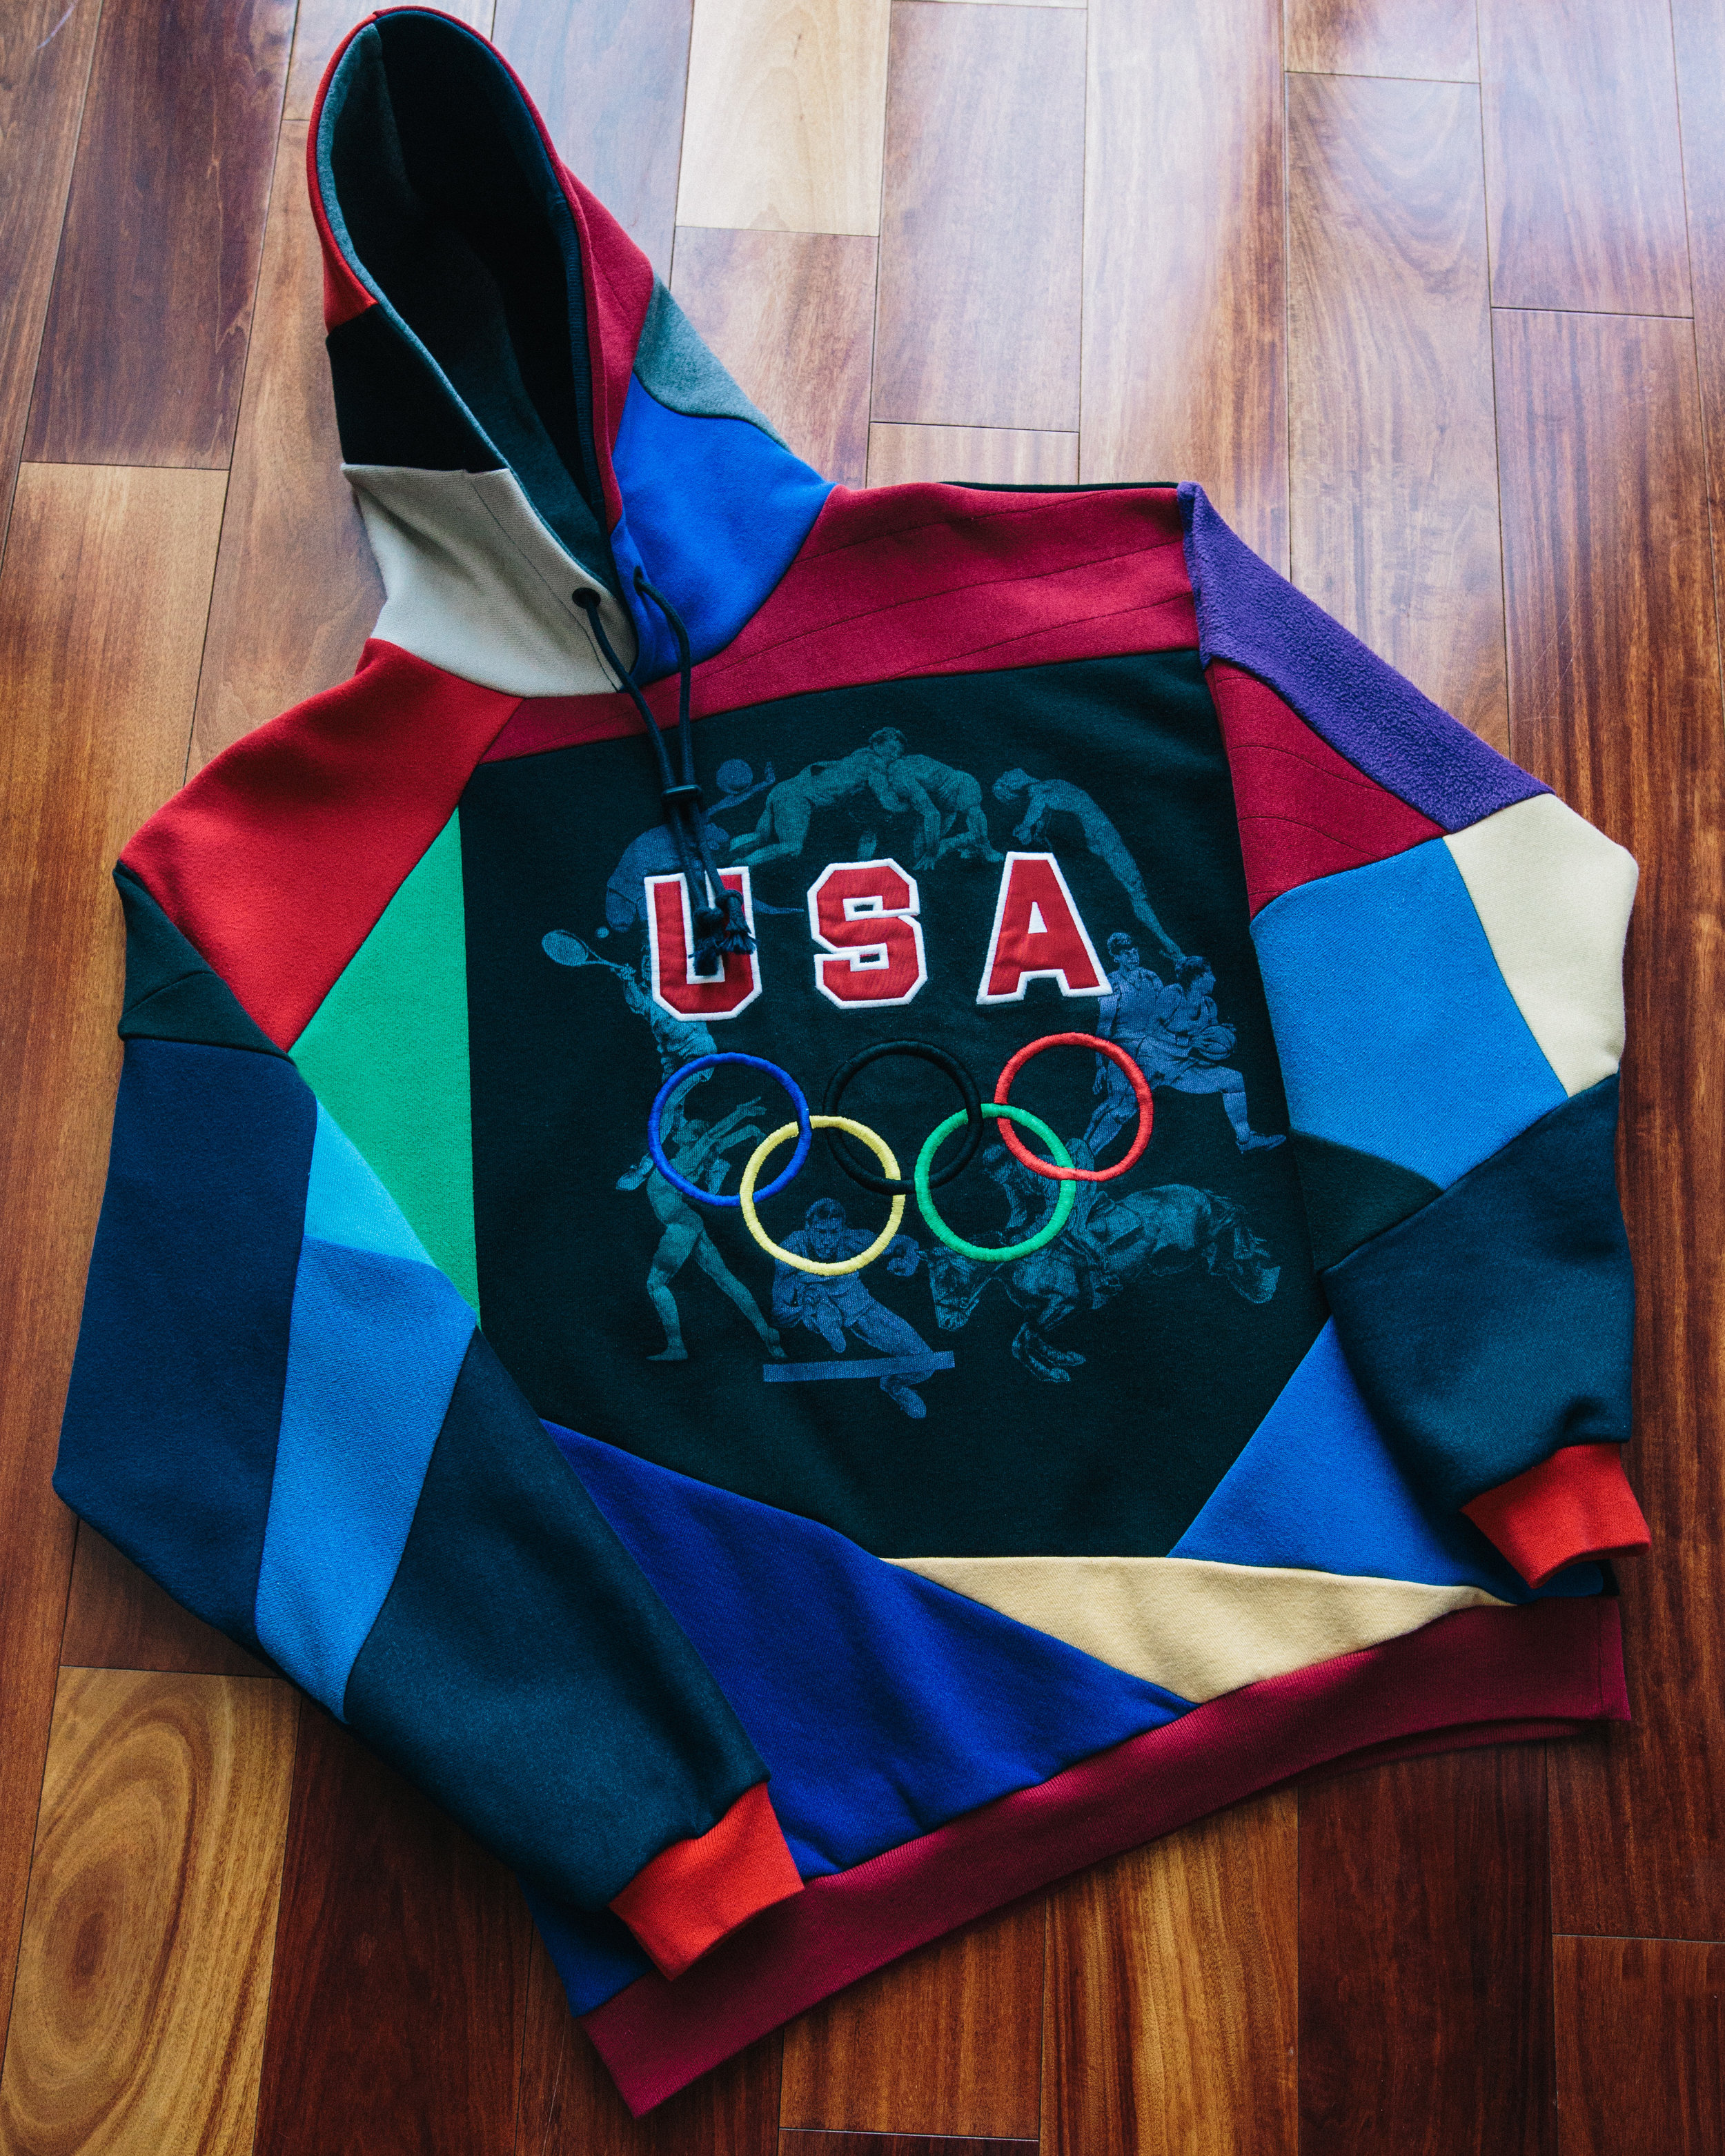 USA olympic - Made reconstructing a vintage black crewneck with corresponding colors to create something new that pops